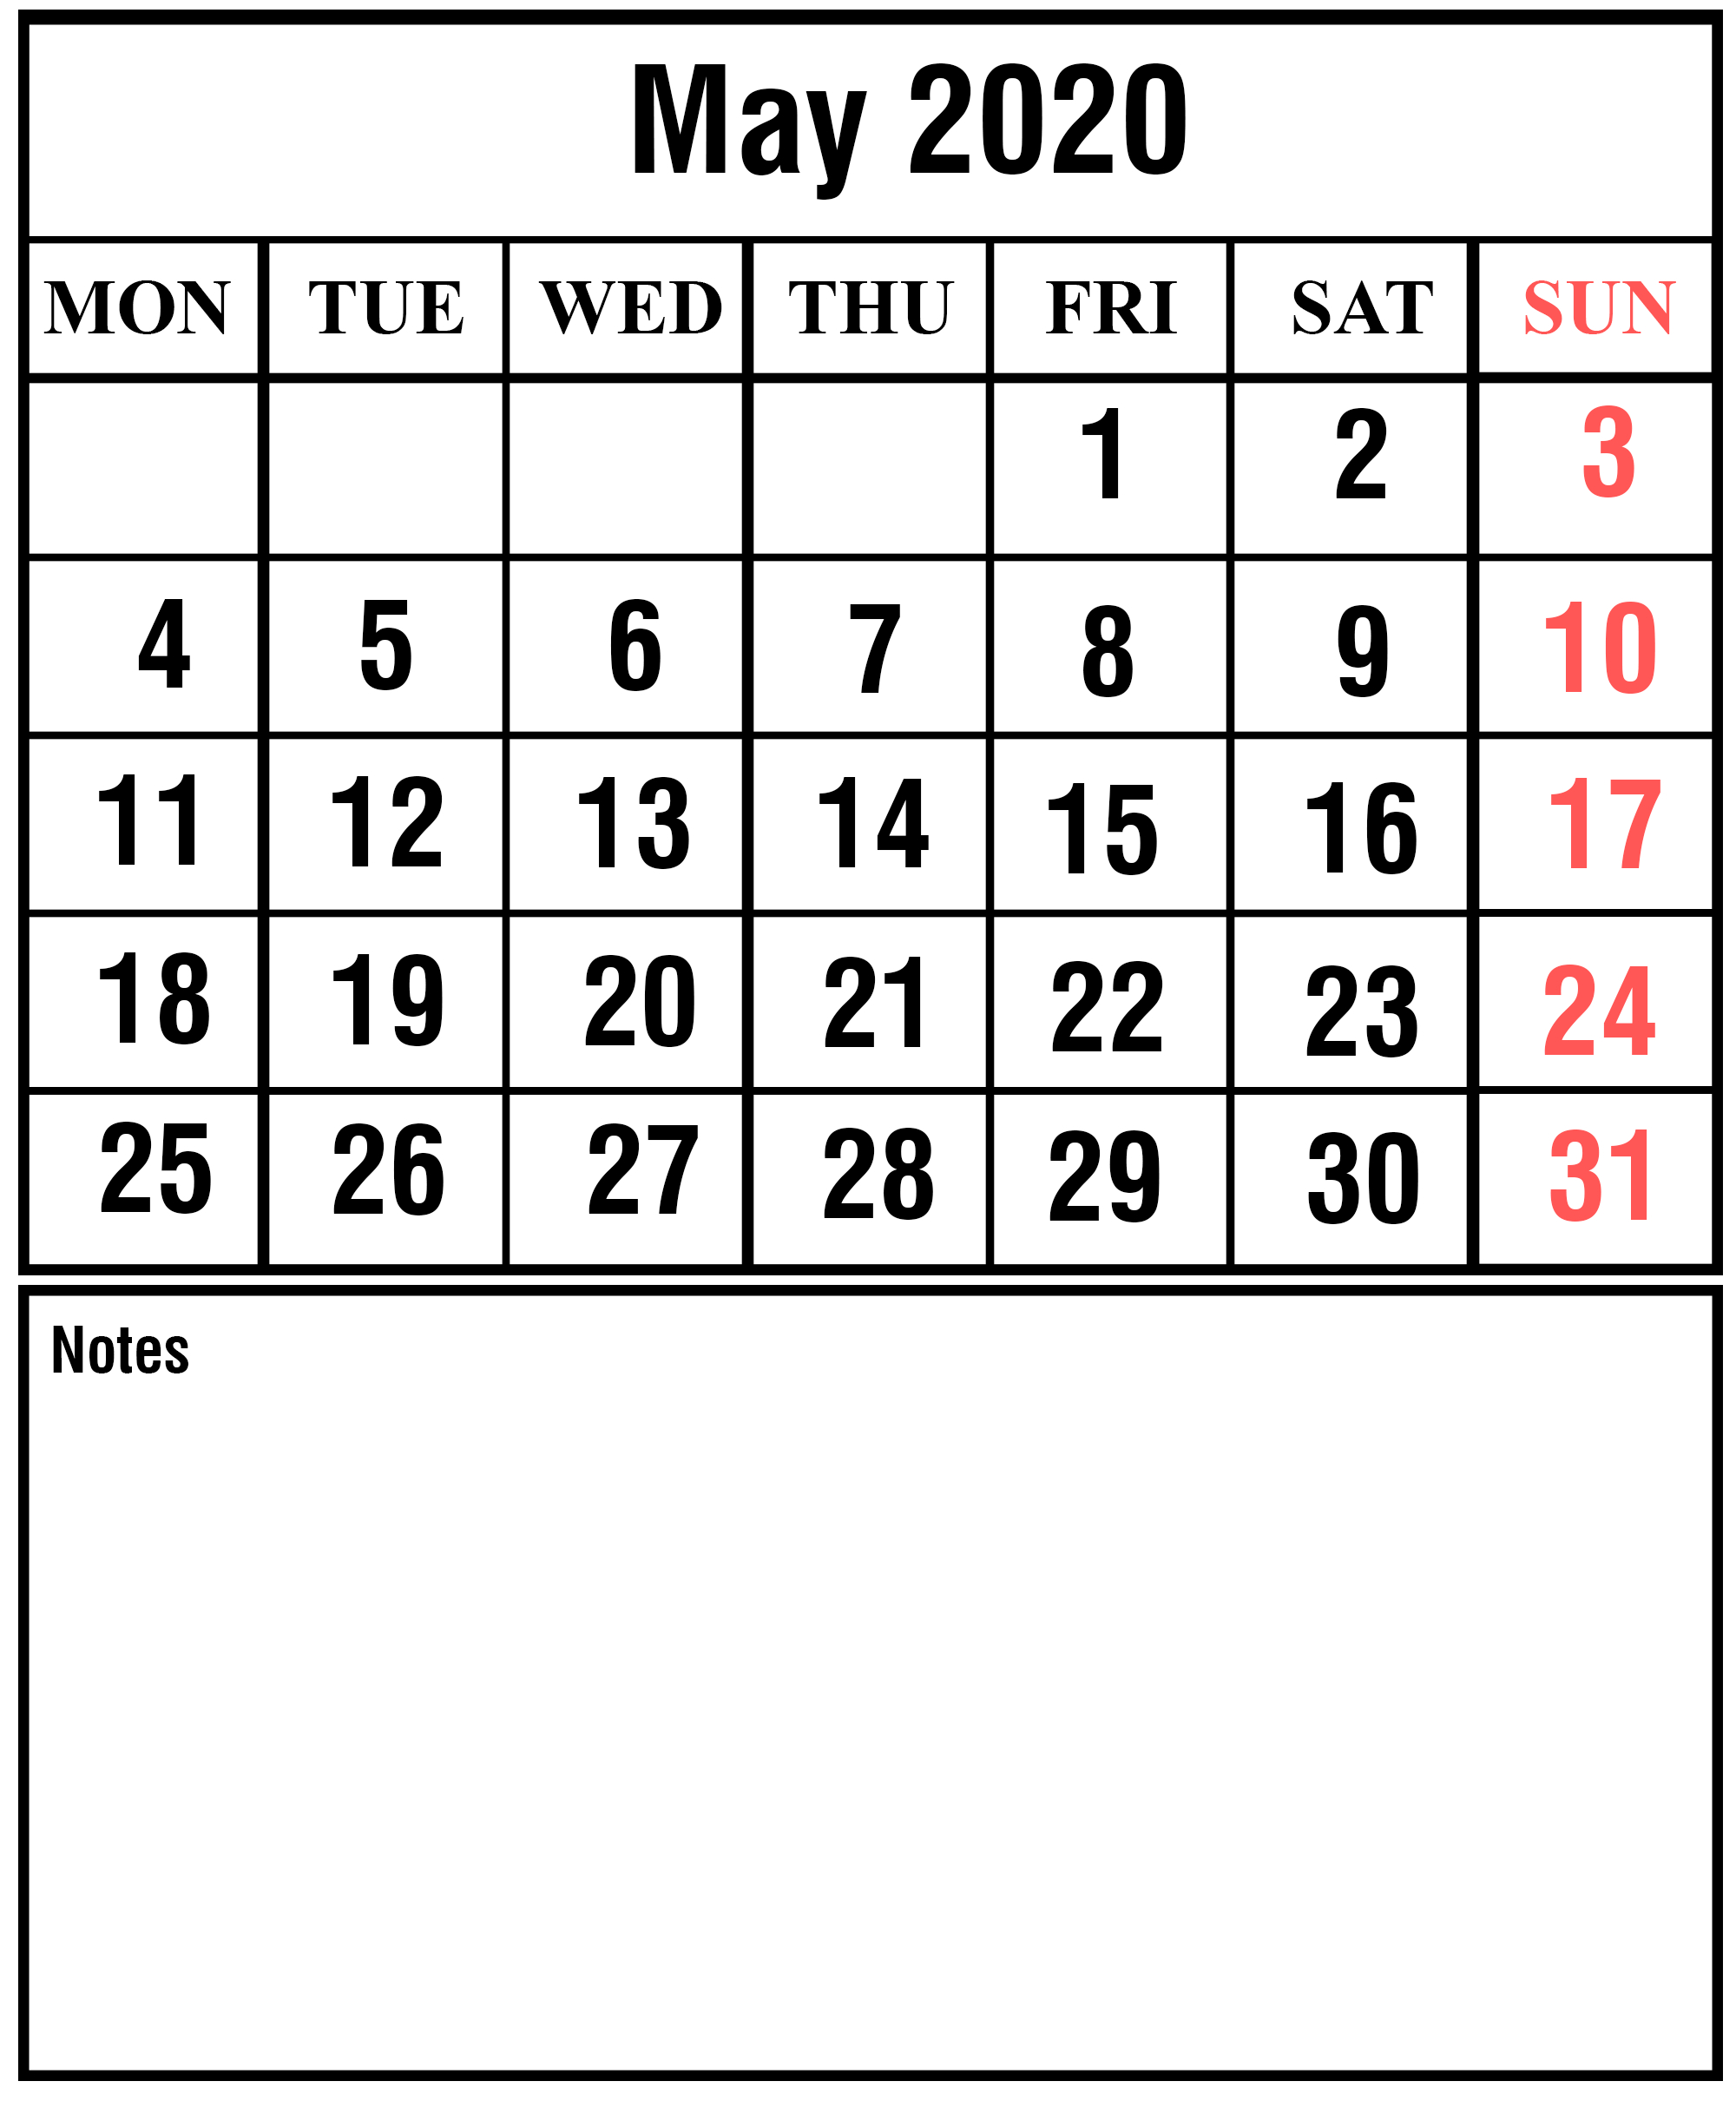 Free May 2020 Printable Calendar Template With Holidays [Pdf